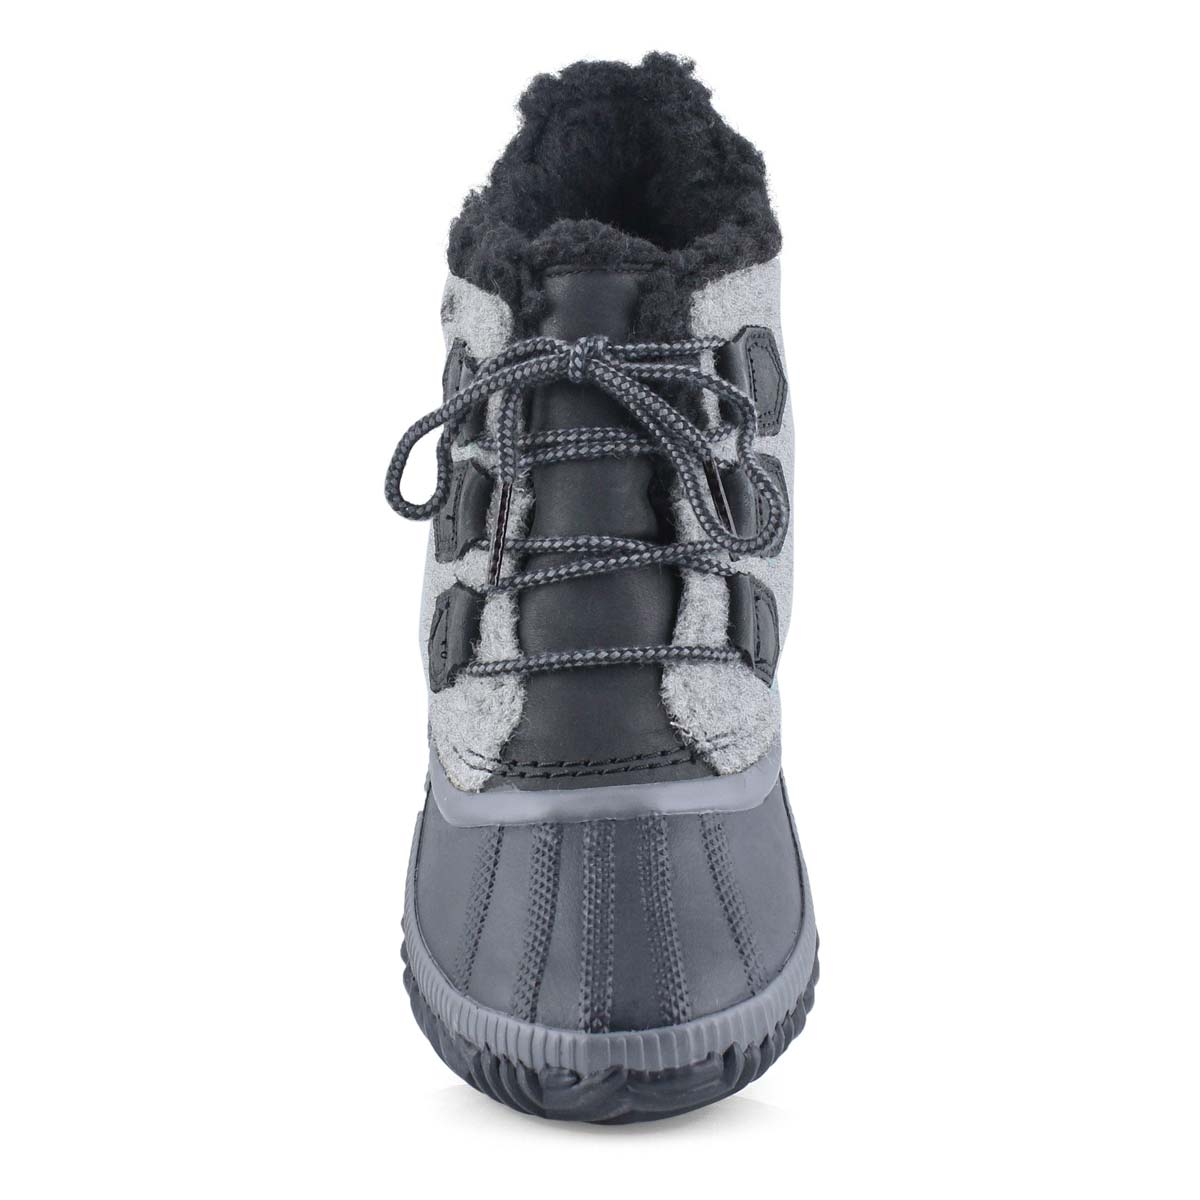 Women's Out'N About Plus Bootie - Black